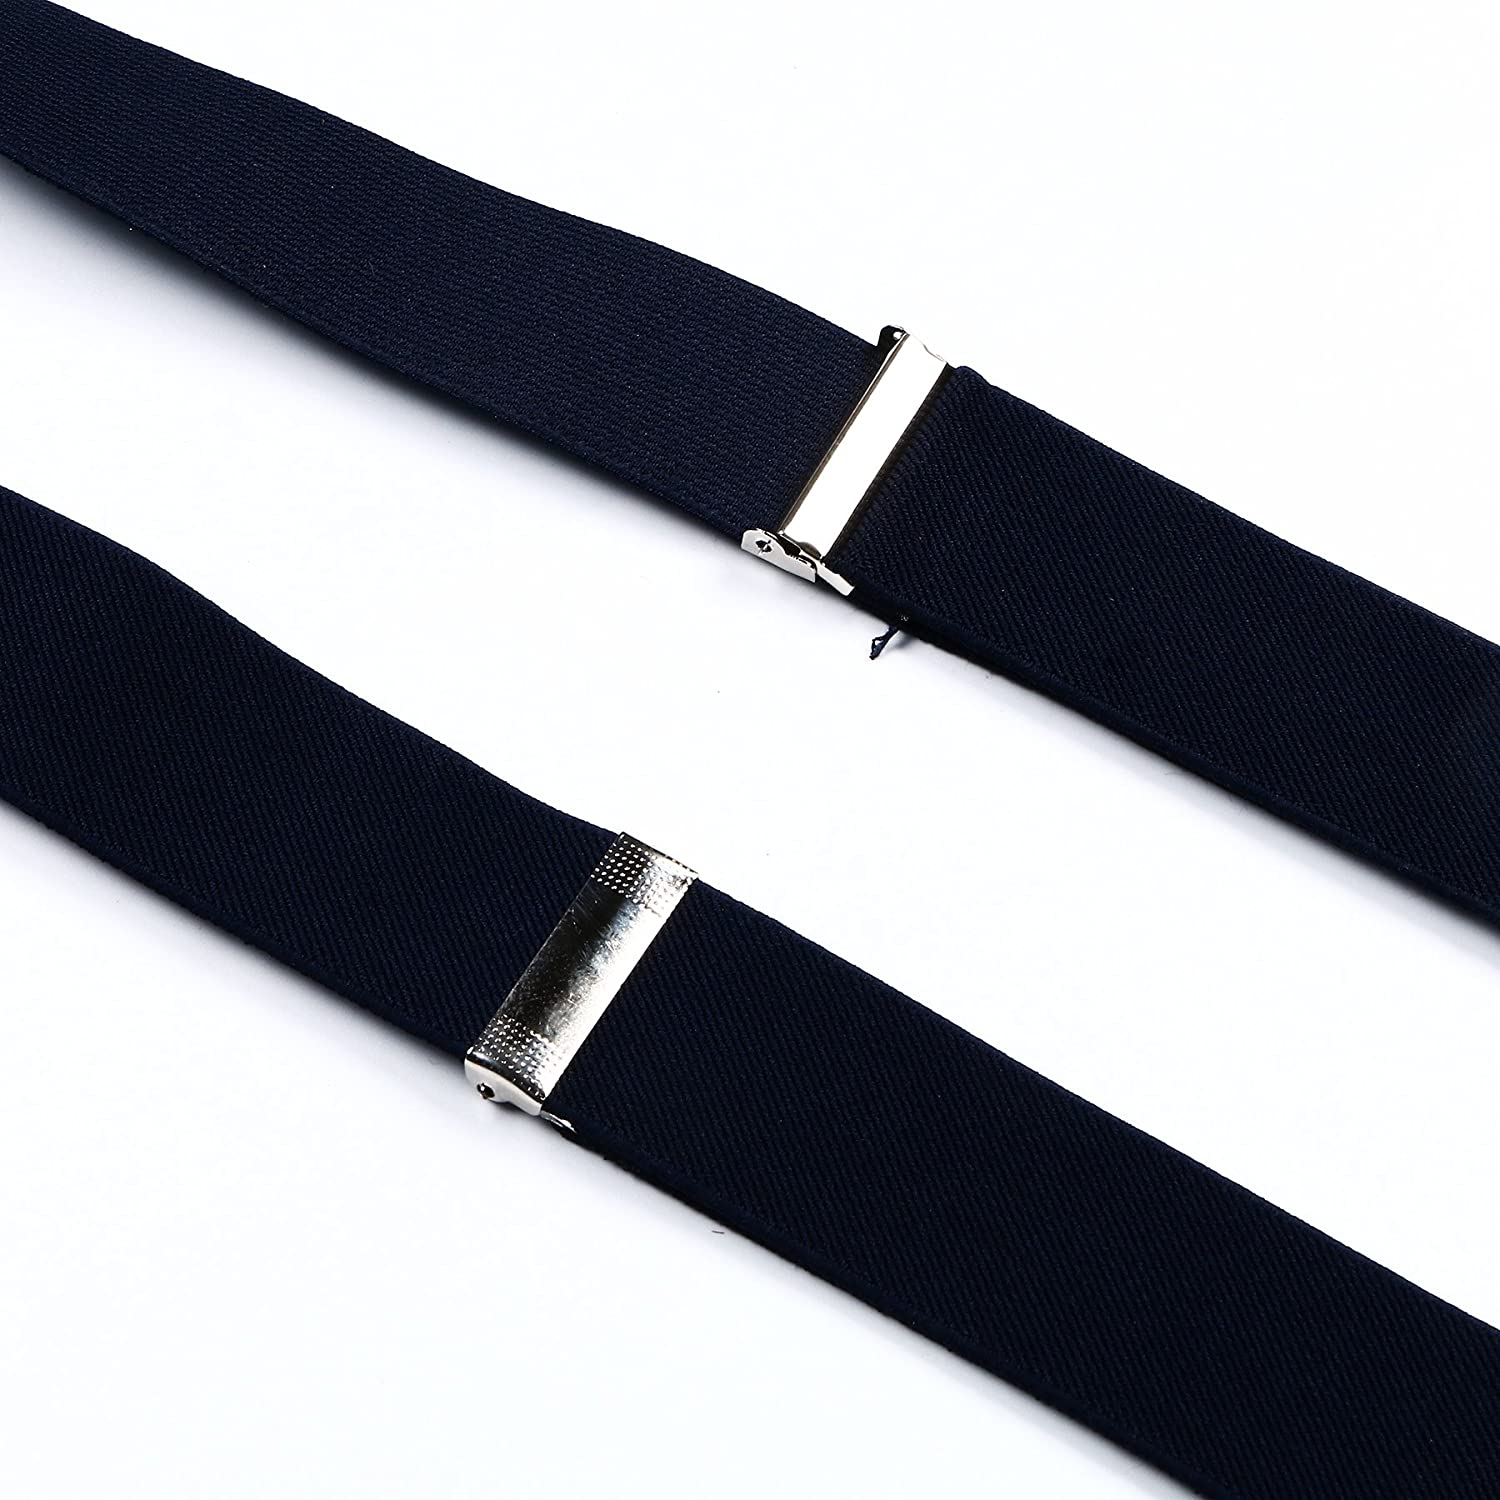 Enwis Mens Suspenders Braces Polyester Elastic Button Holes Solid Navy Blue